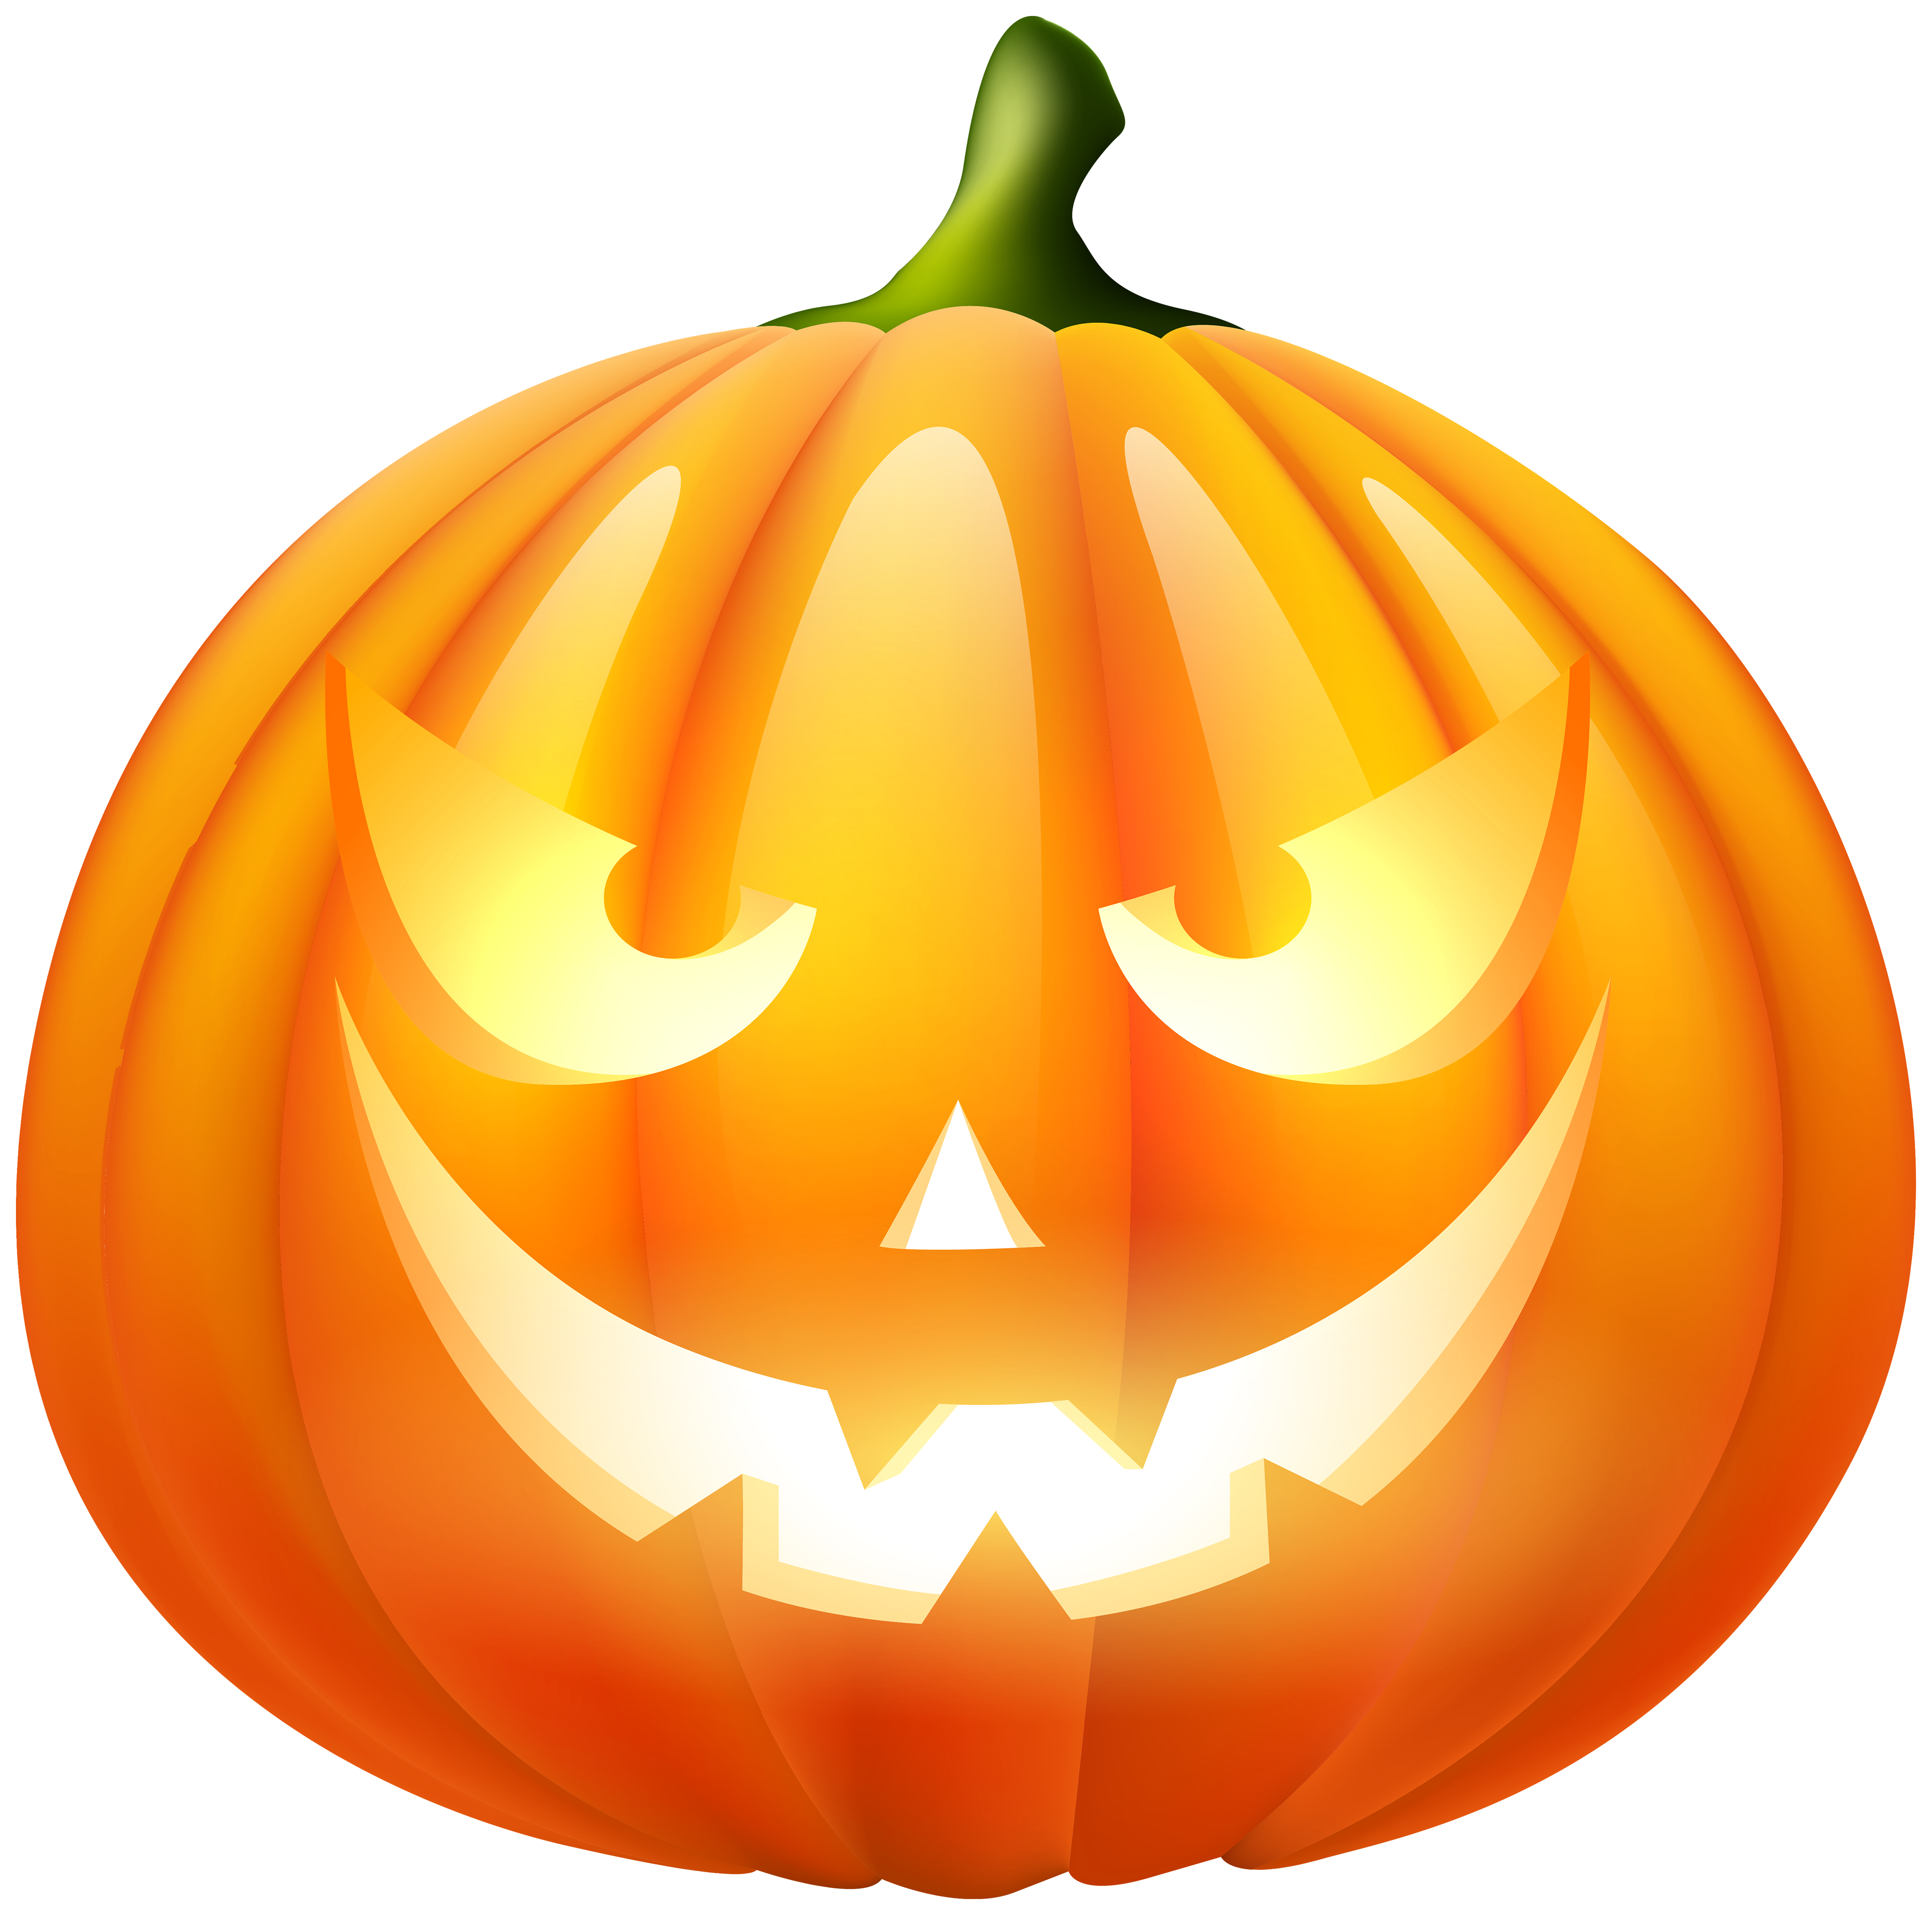 Halloween Pumpkin PNG Clipart Image | Gallery Yopriceville - High ...